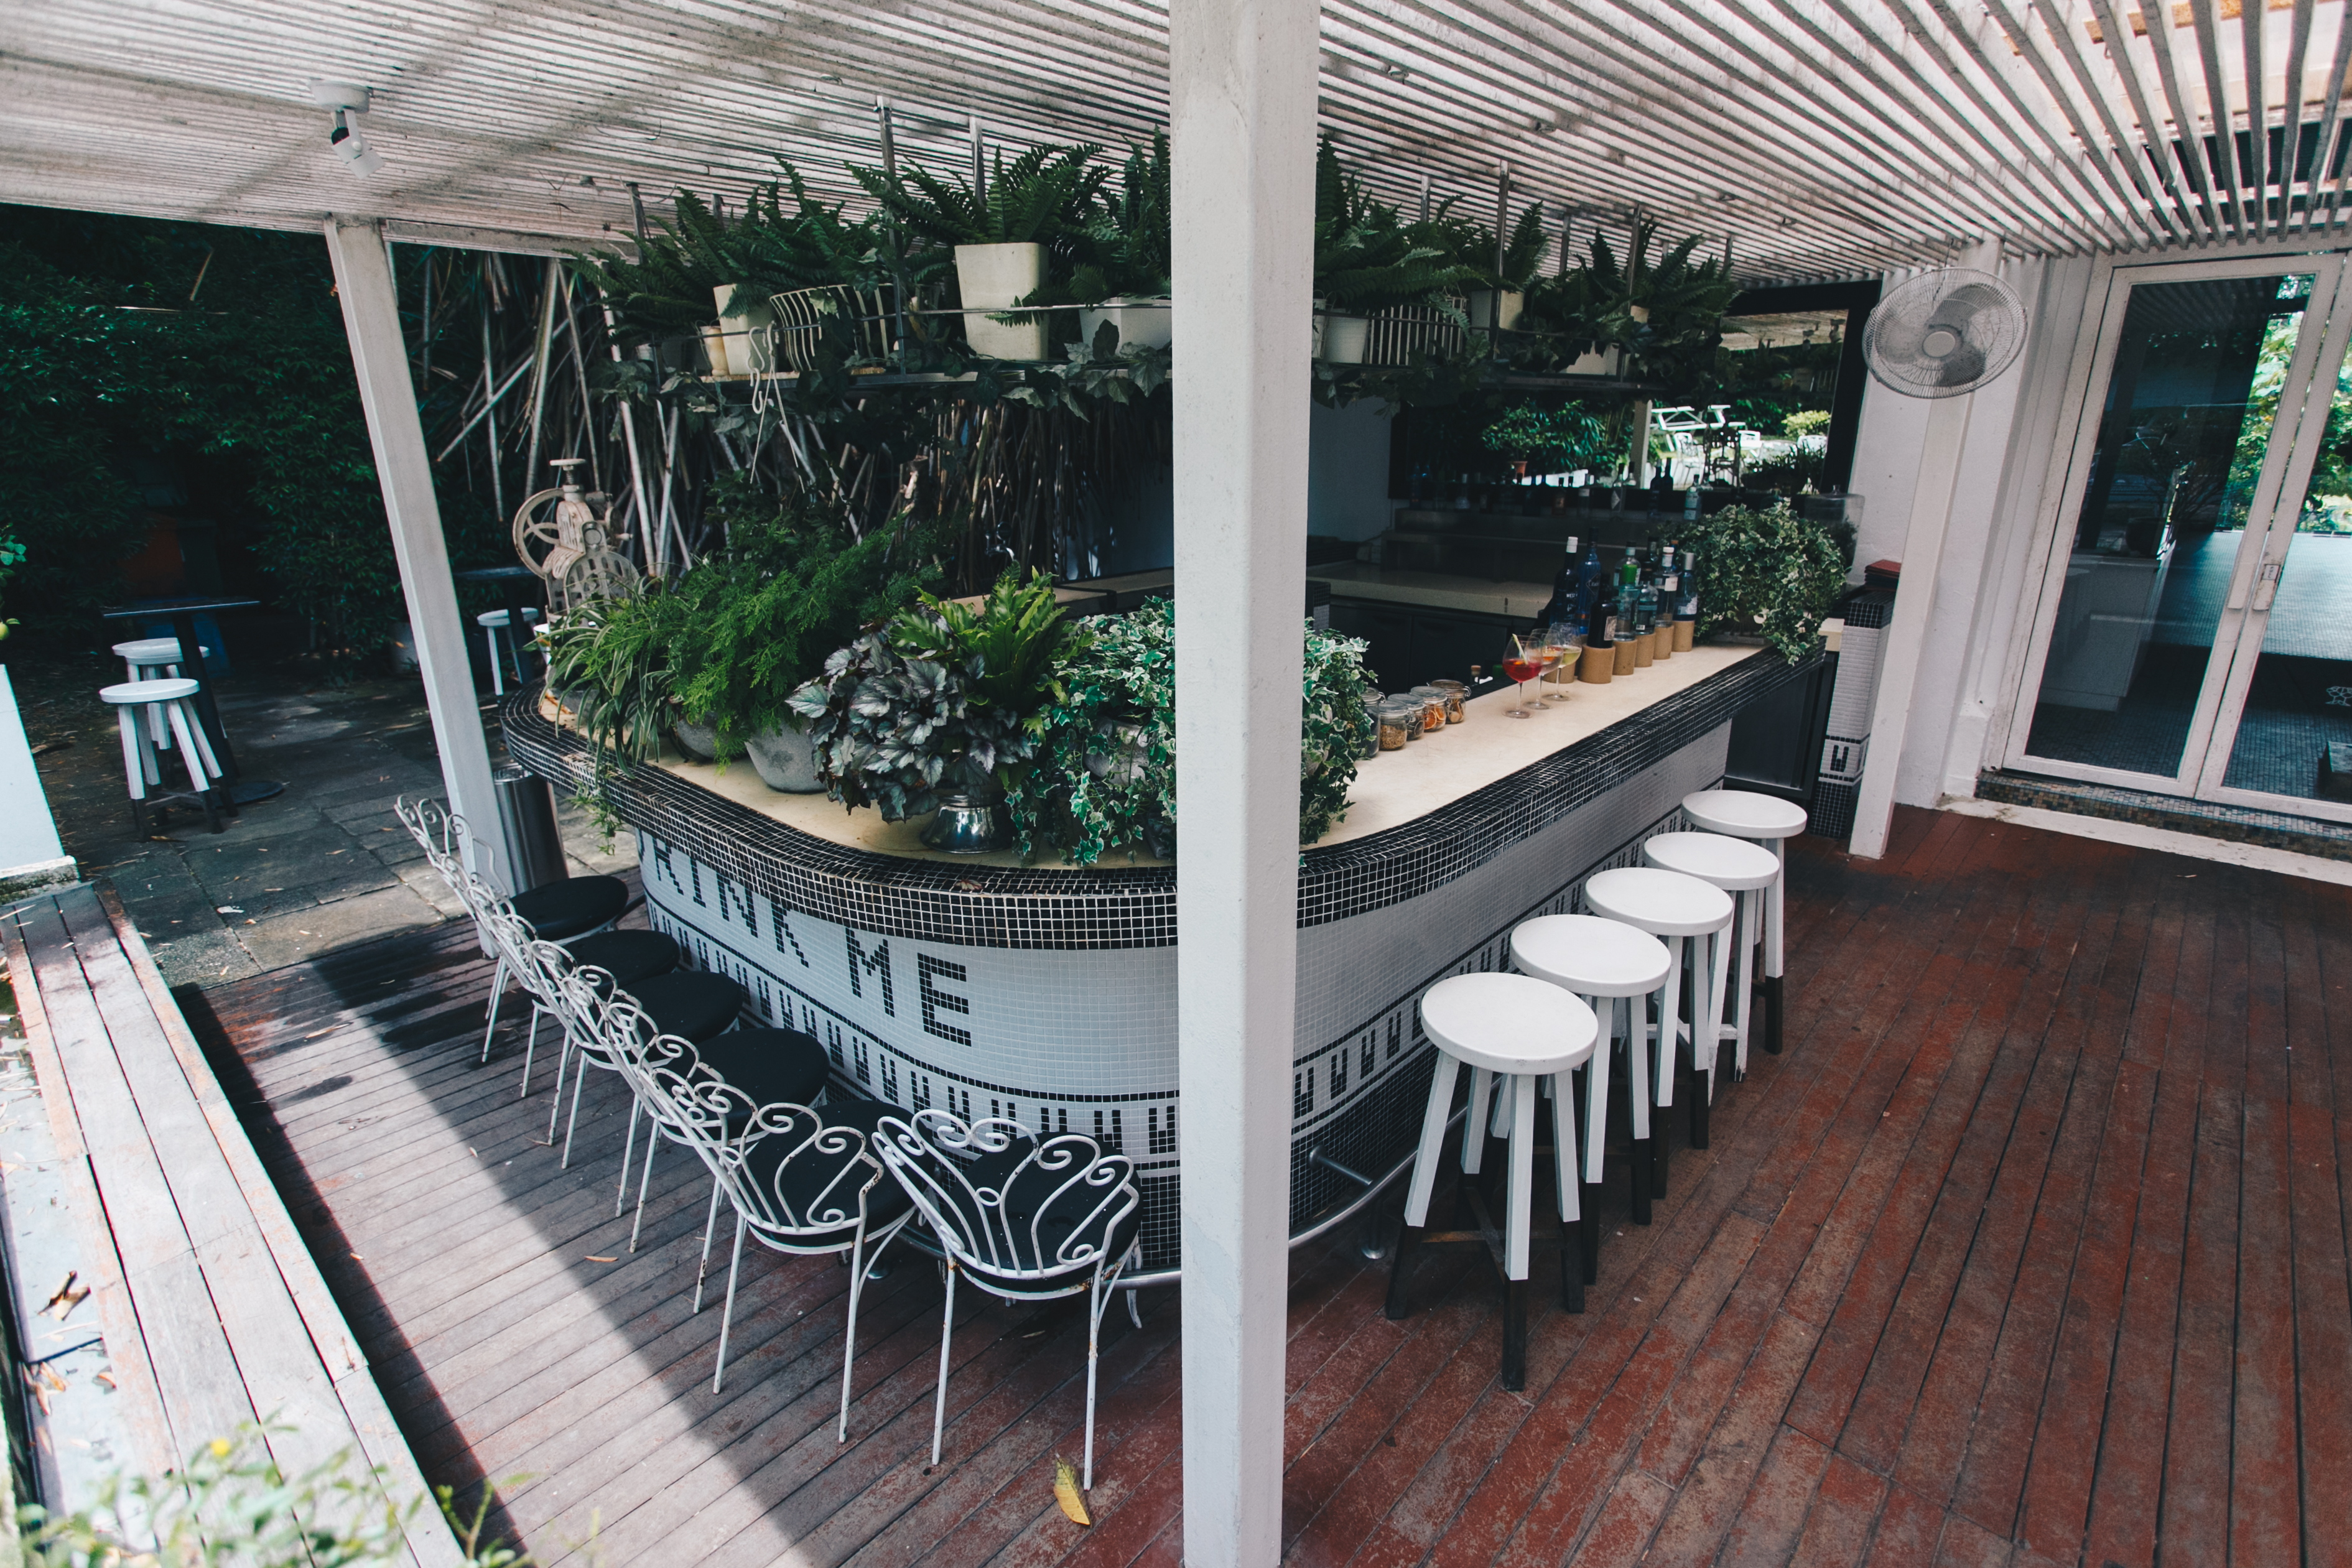 Best-restaurant-venuerific-blog-the-white-rabbit-restaurant